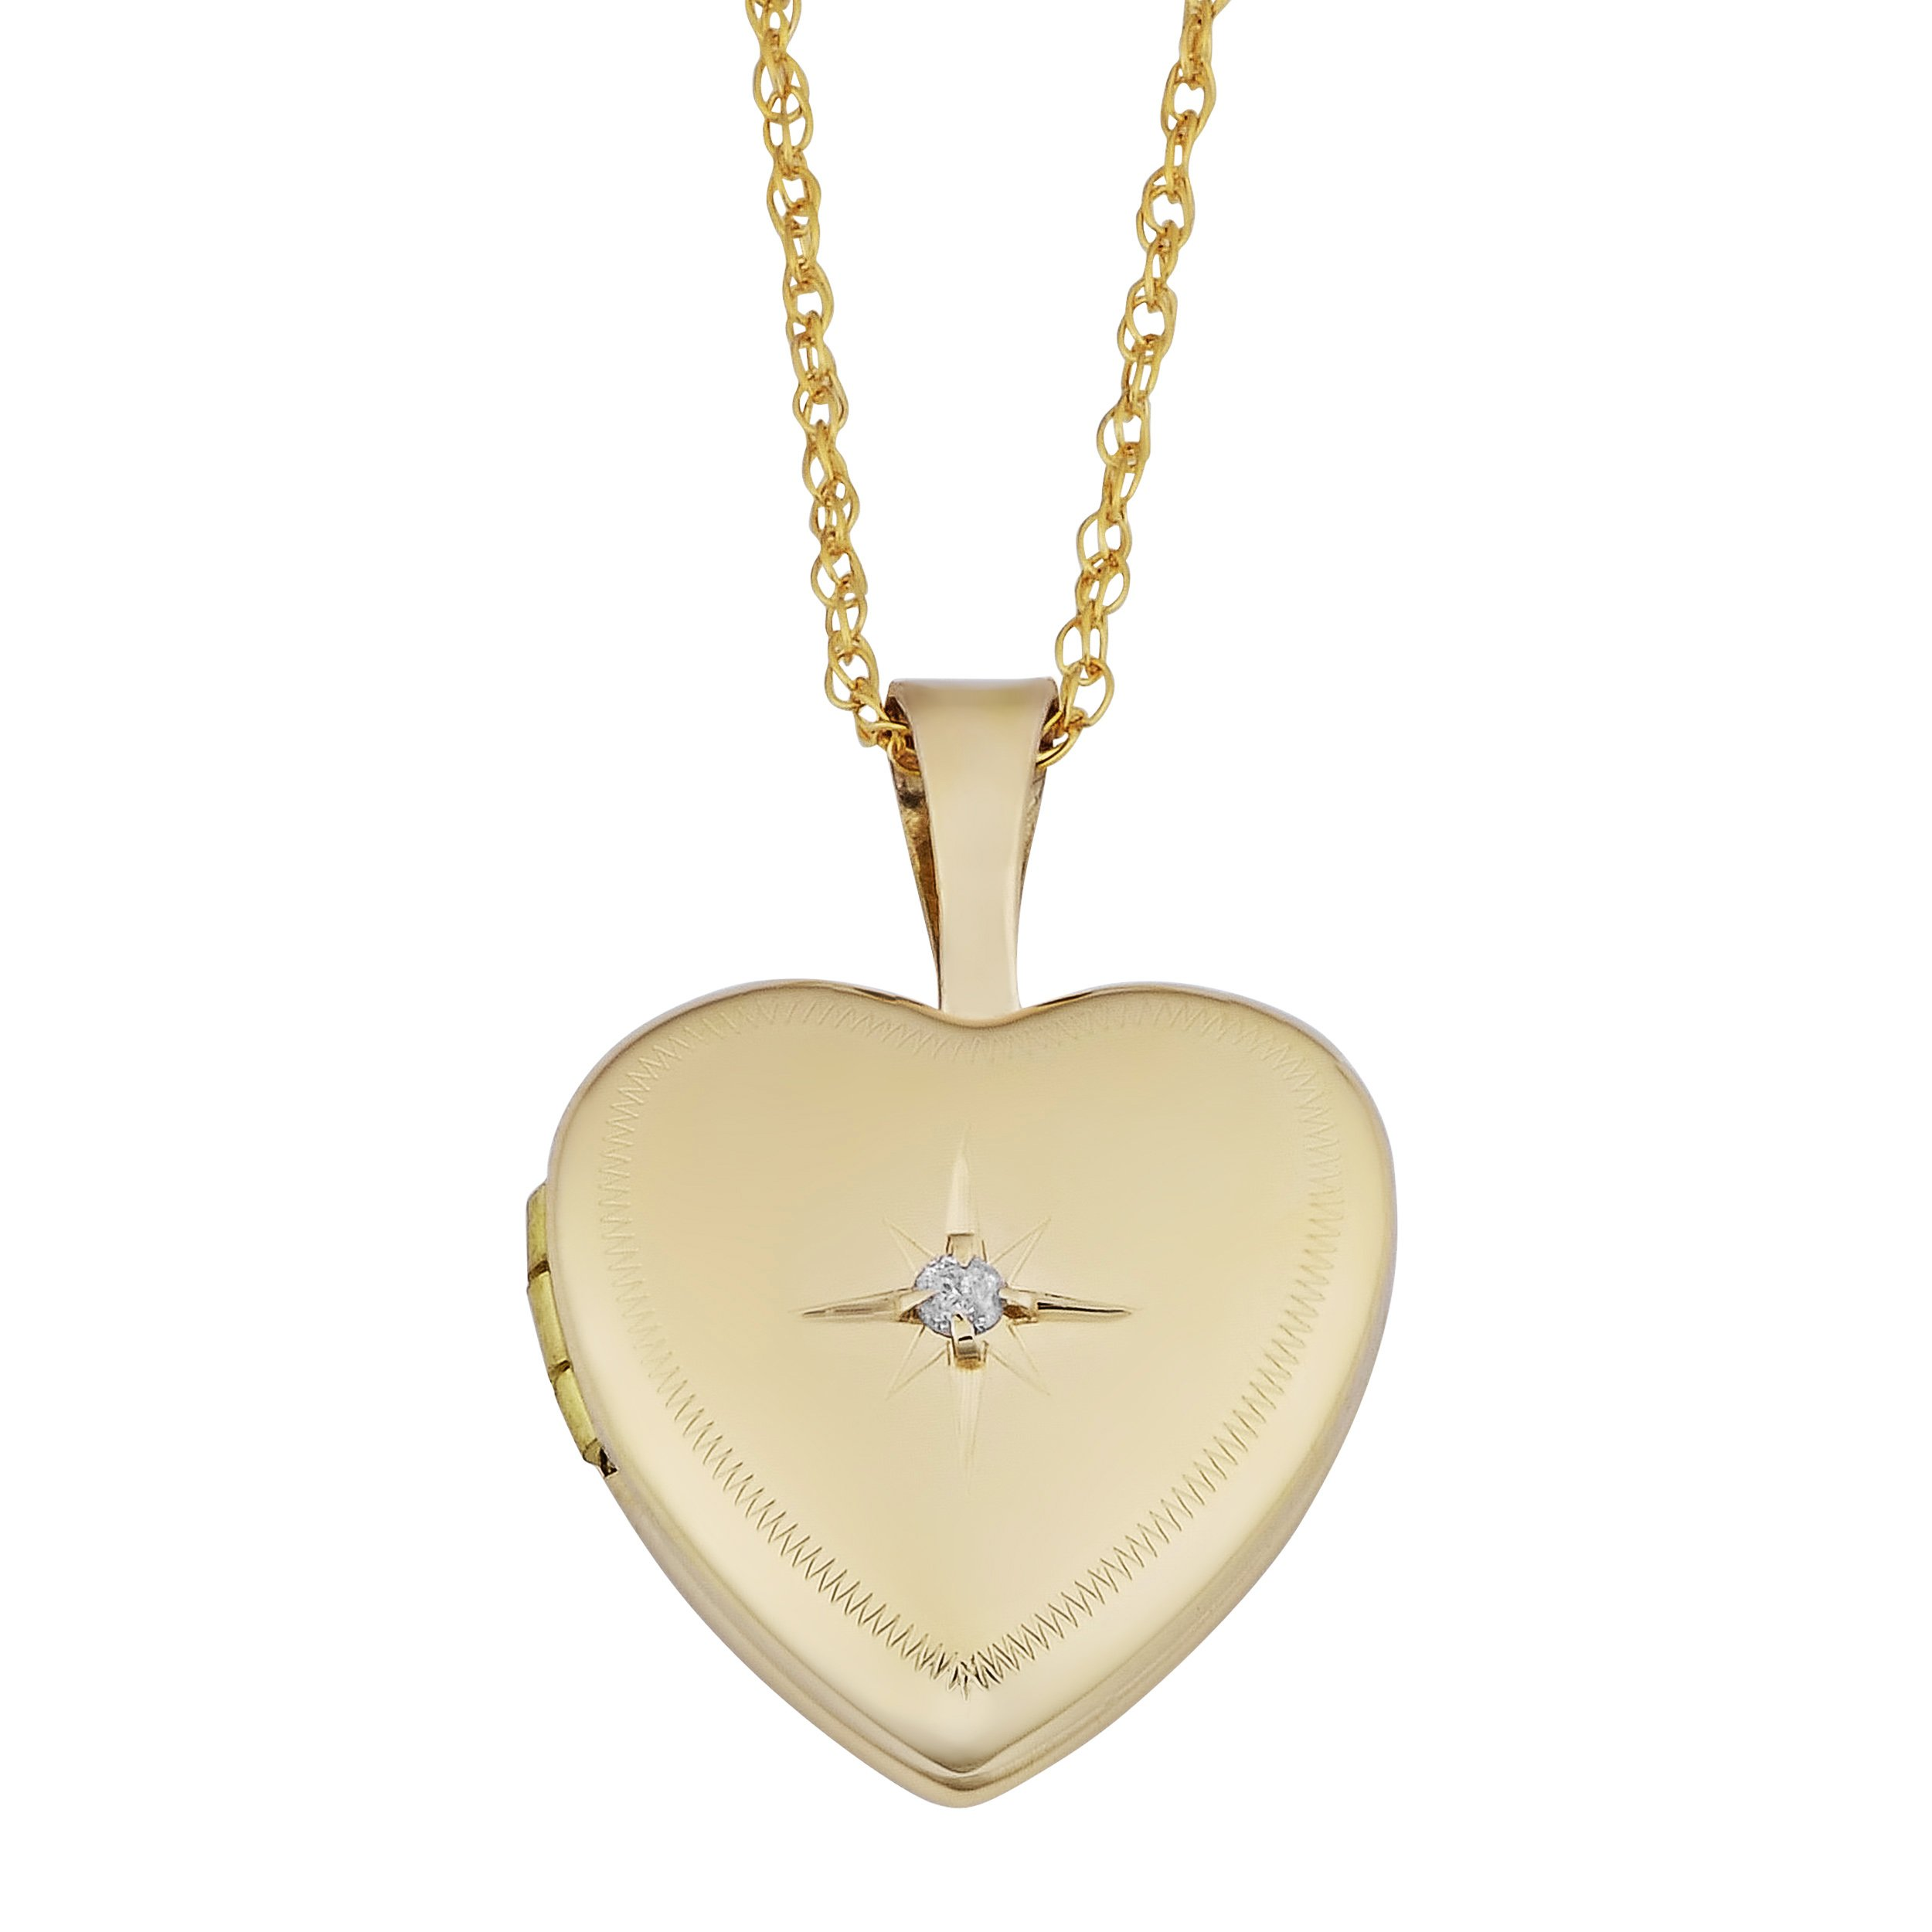 Kooljewelry 10k Yellow Gold Heart Locket with Diamond Accent on Rope Chain Necklace (18 inch) by Kooljewelry